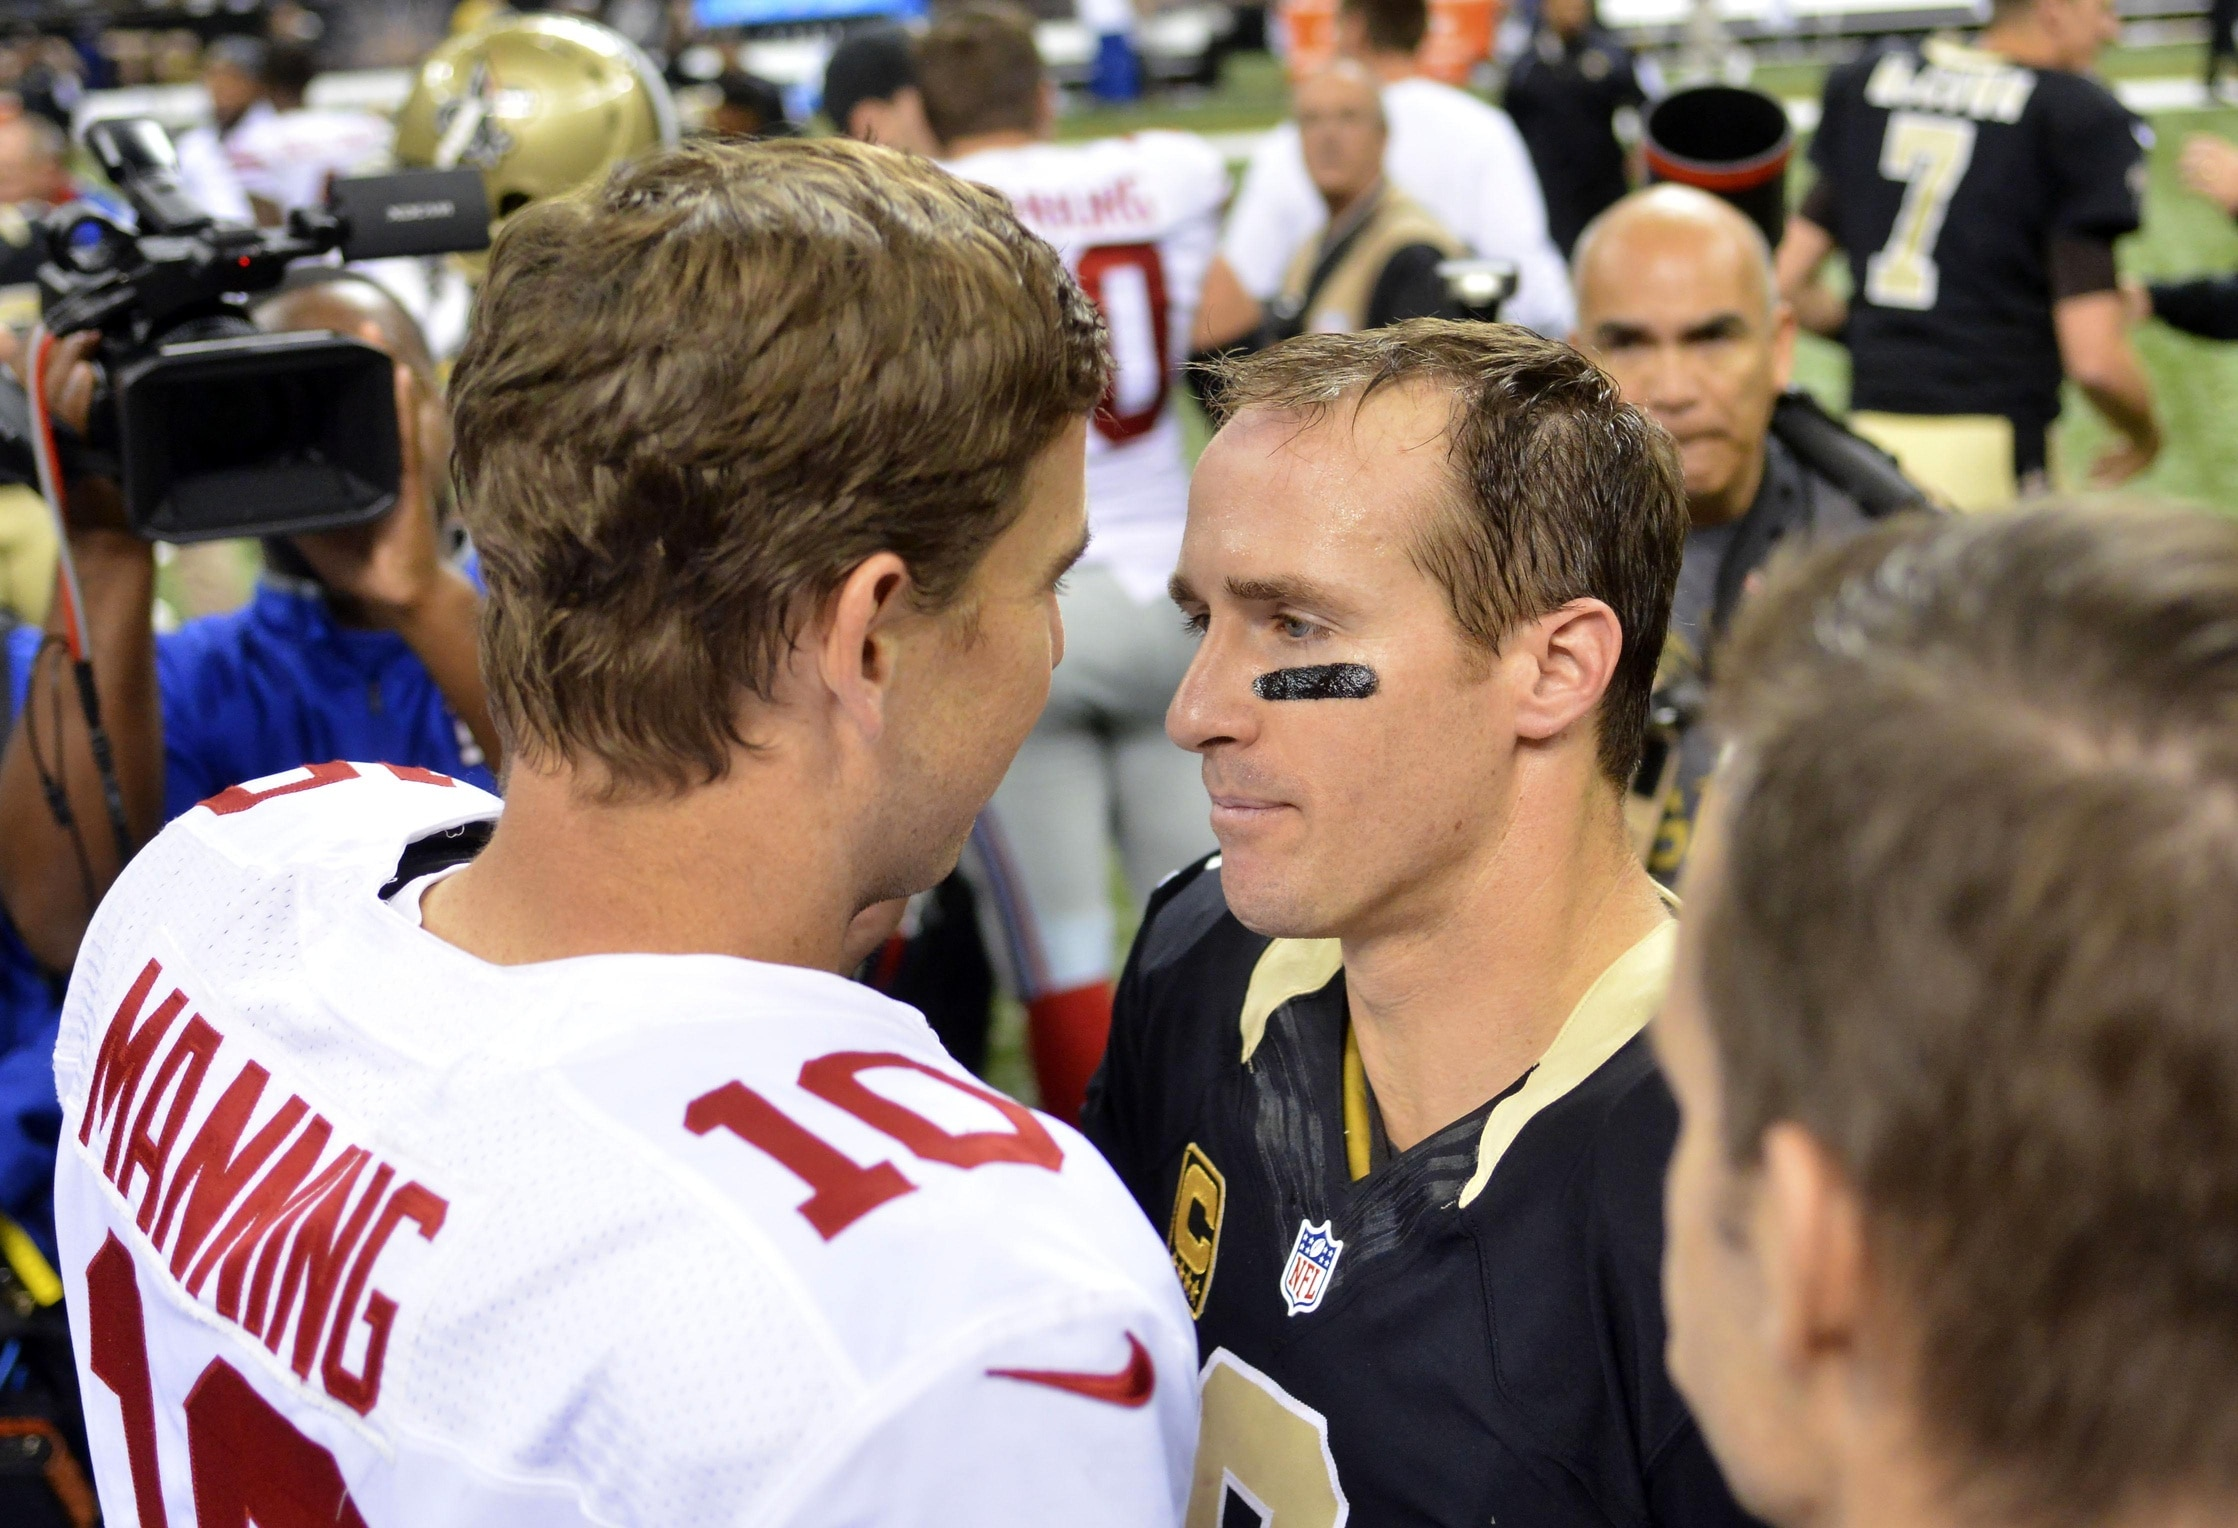 Drew Brees and Eli Manning